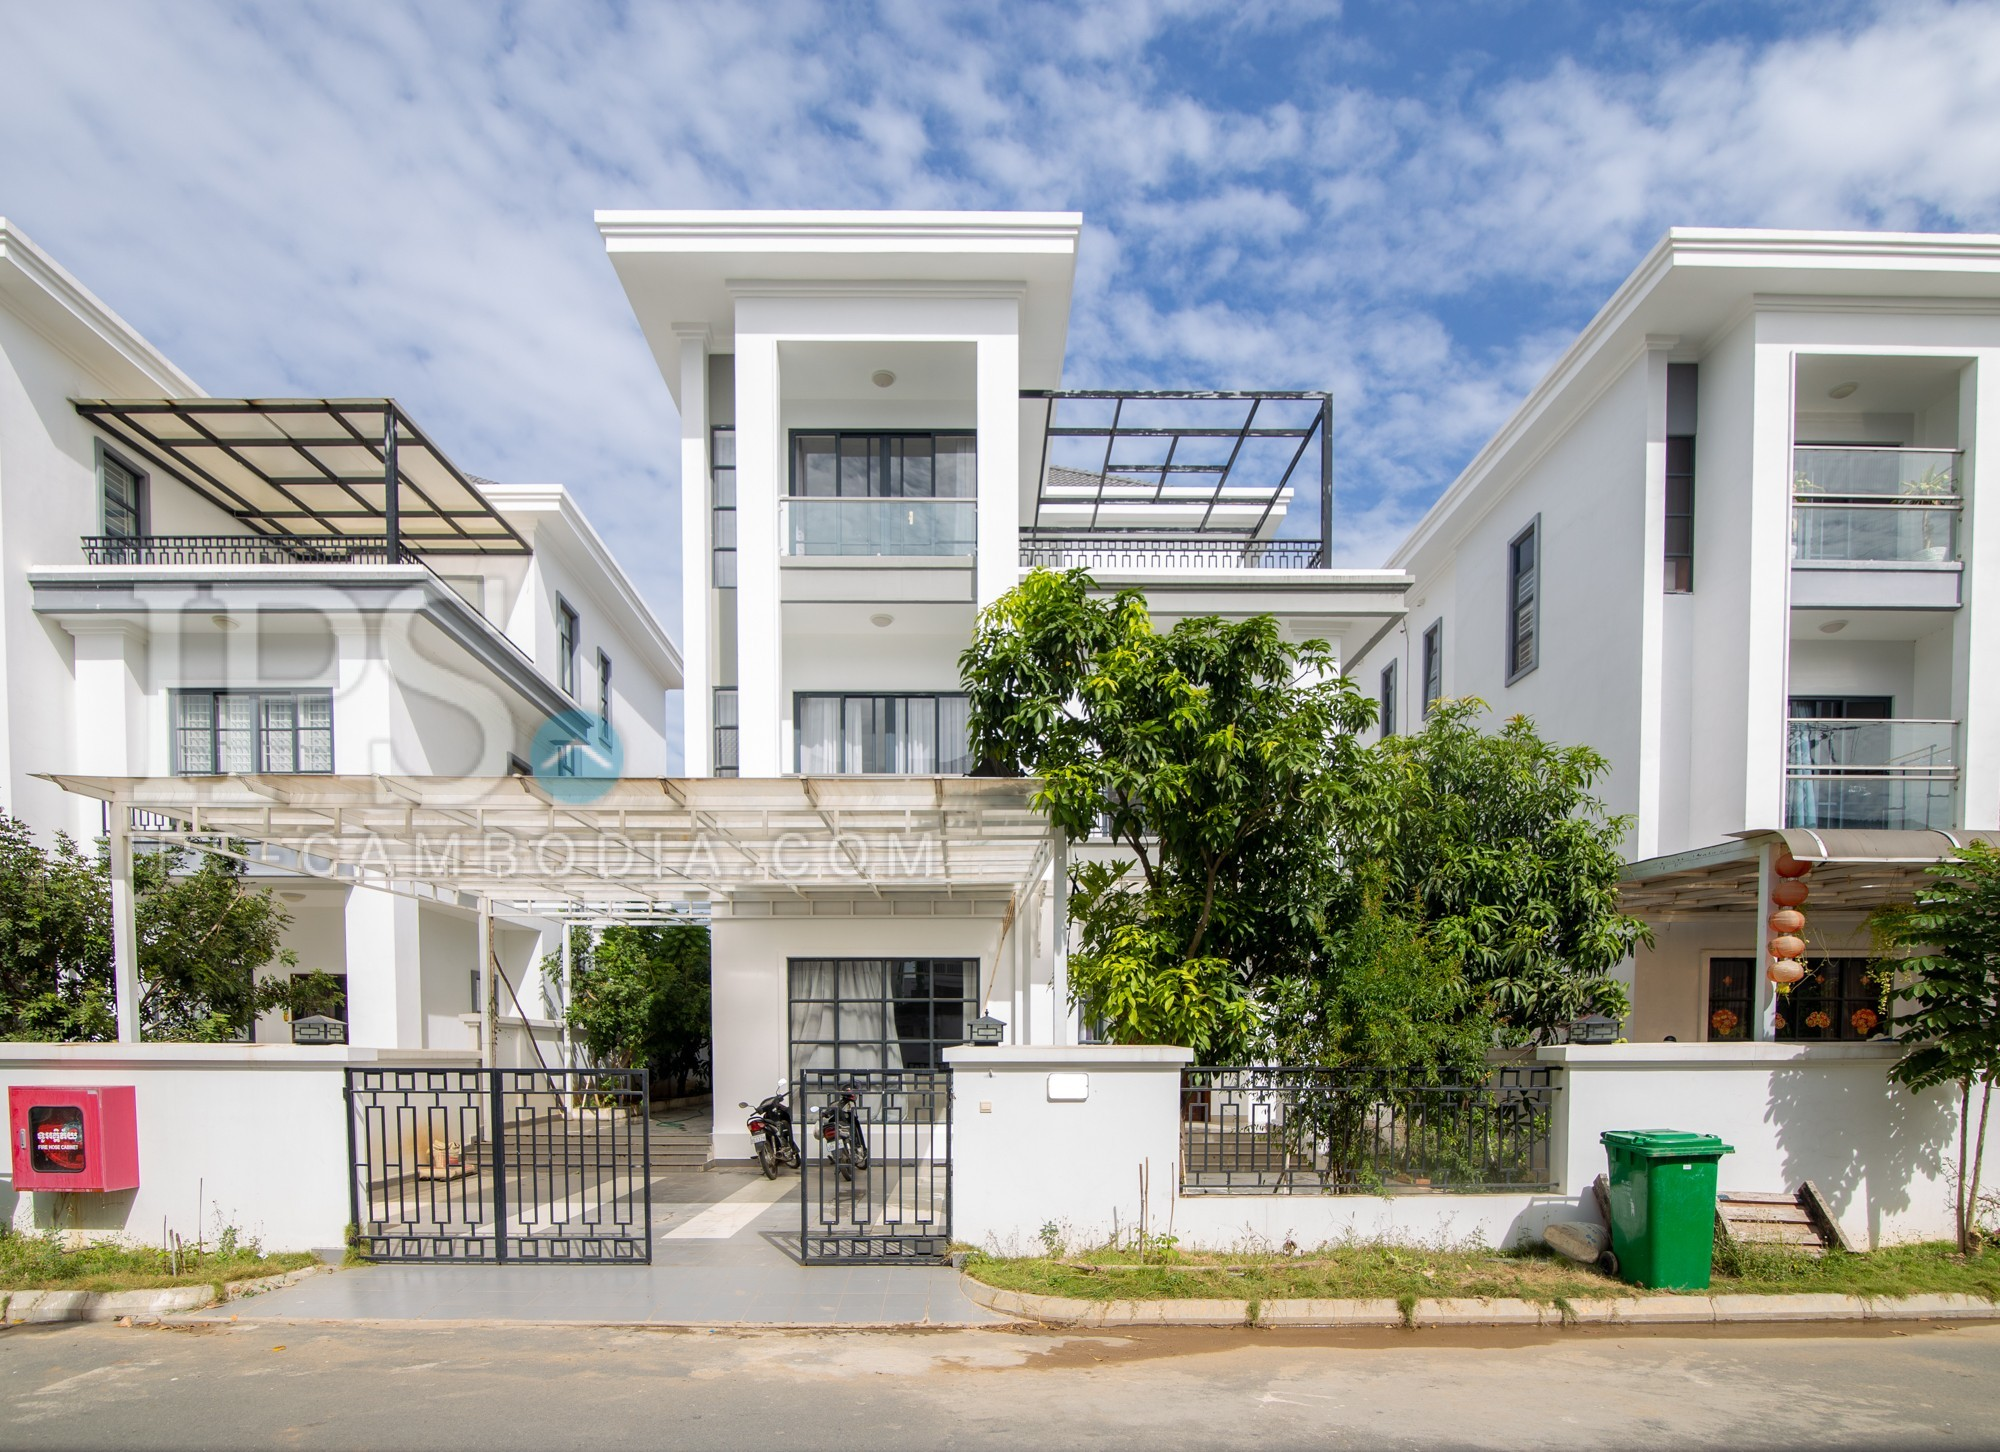 5 Bedroom Villa For Rent - Chak Angrae Kraom, Phnom Penh